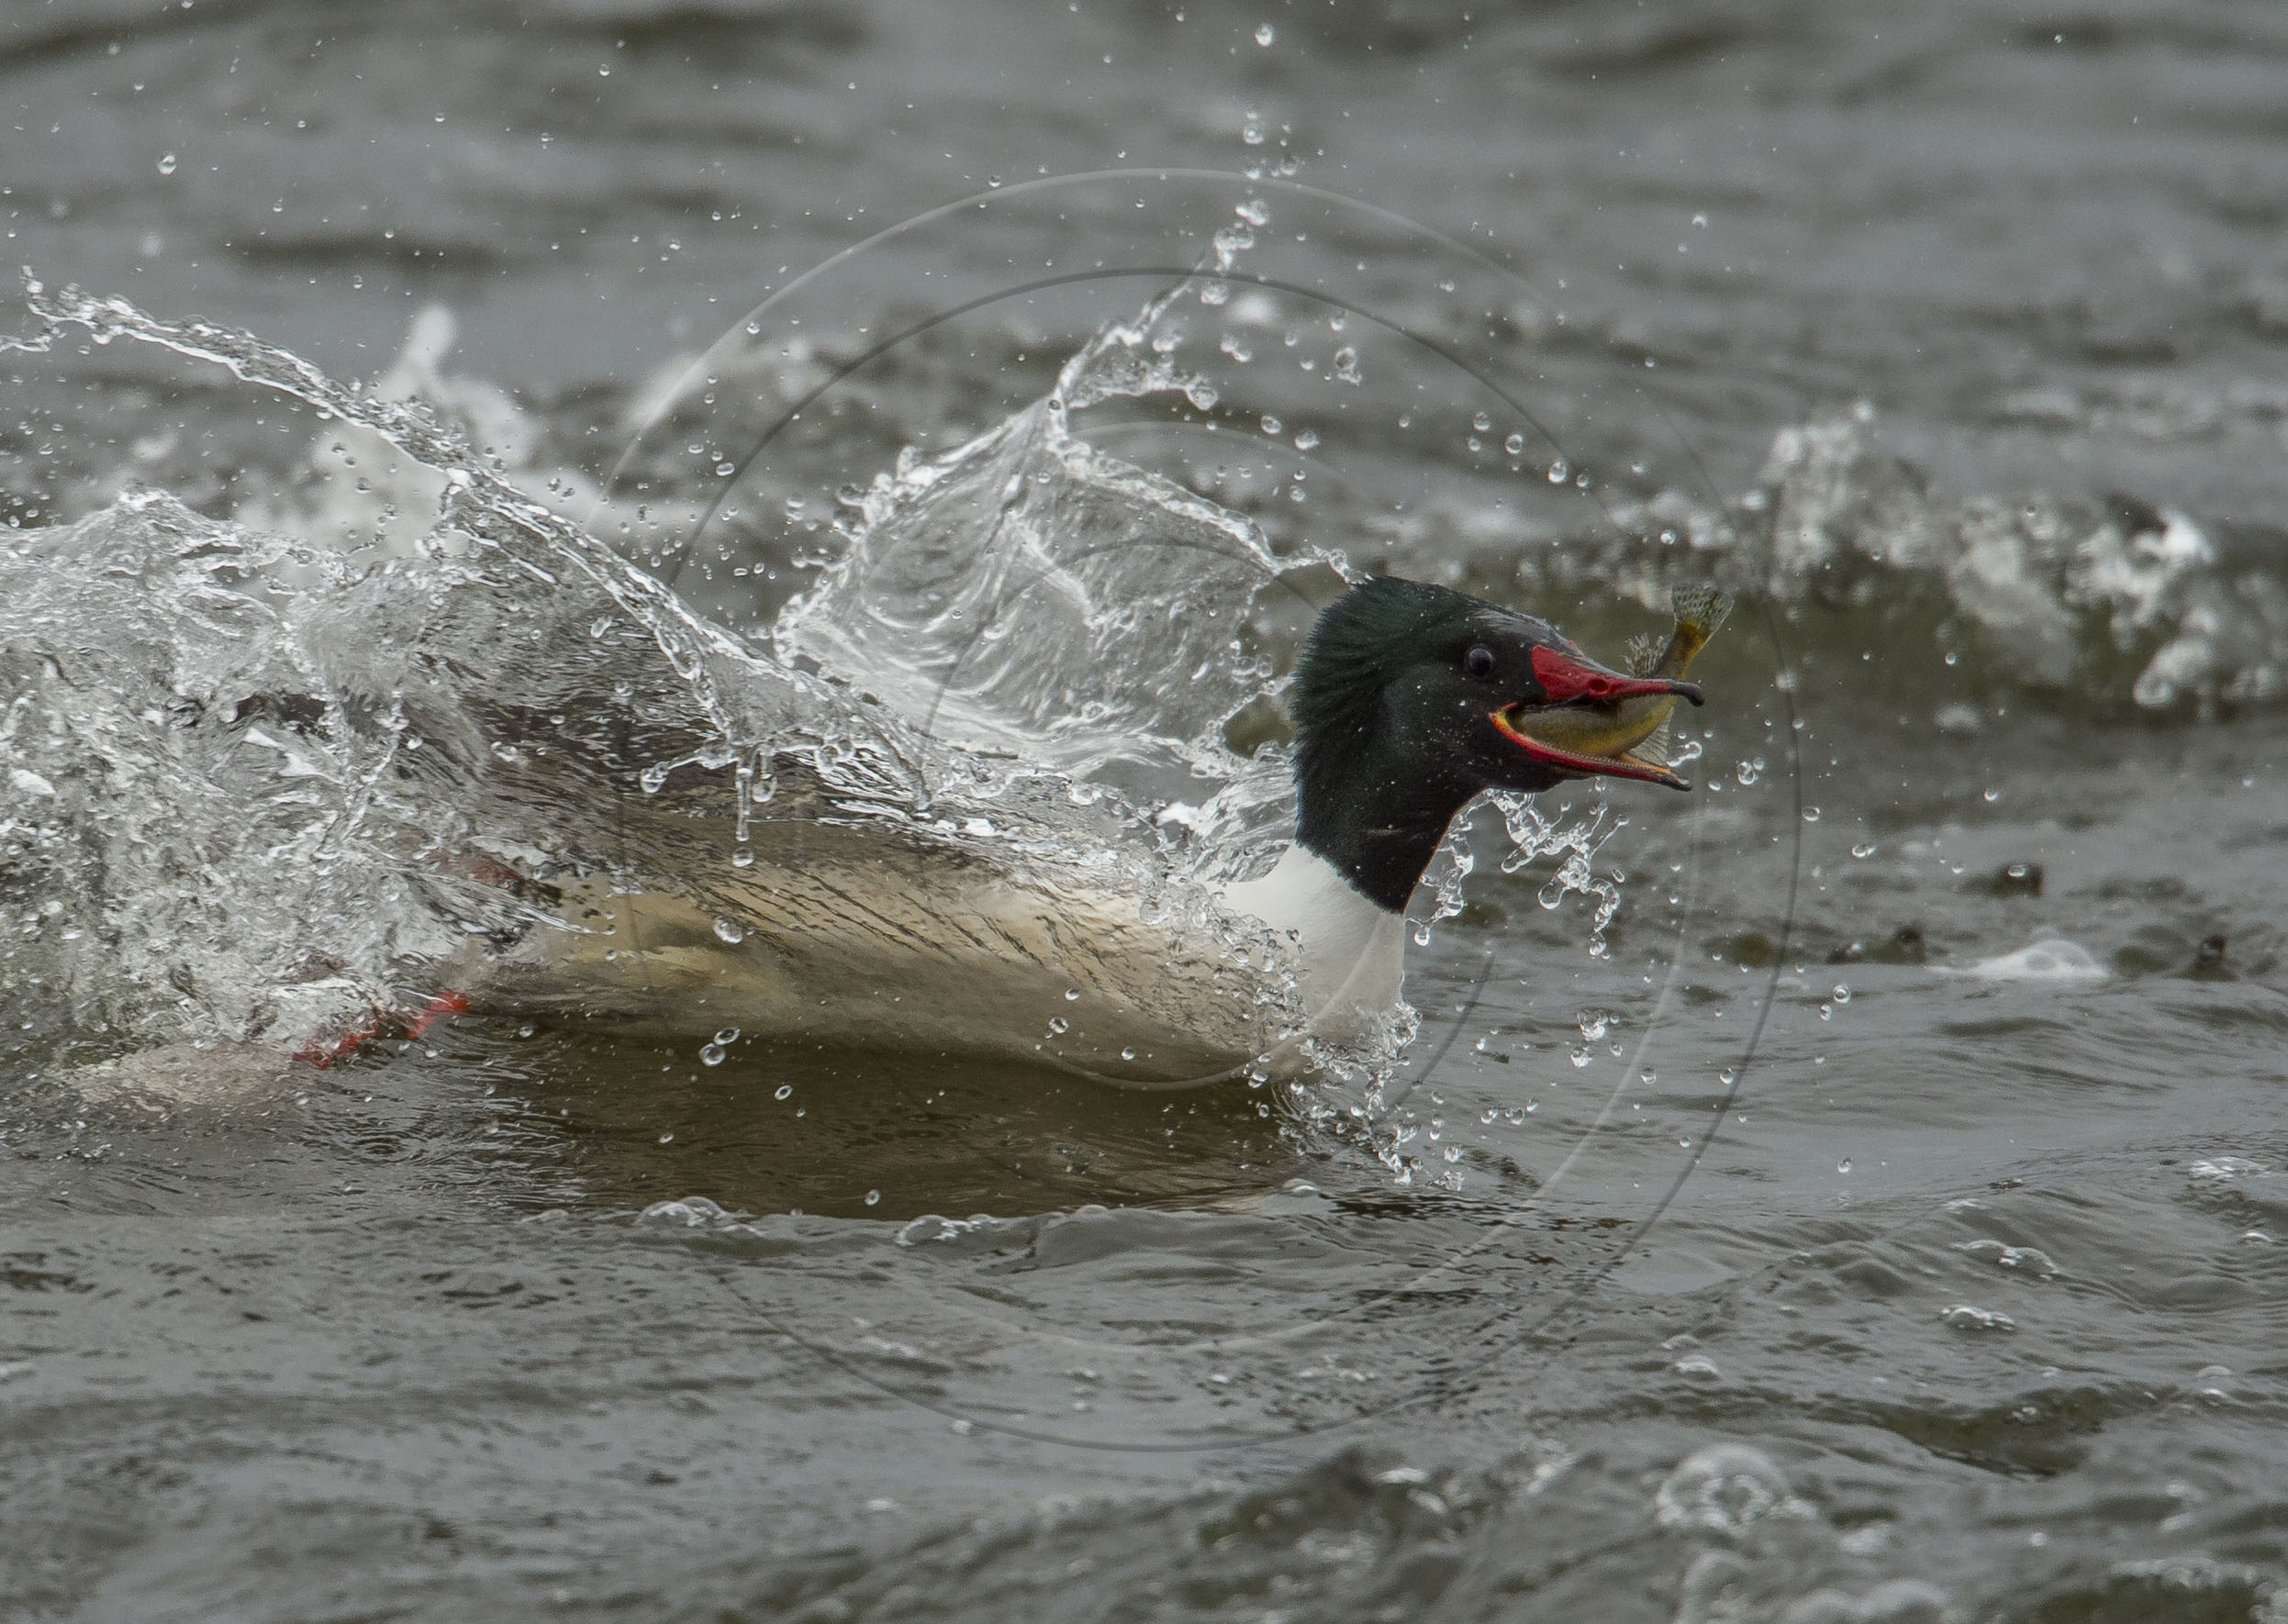 Merganser Fish 2